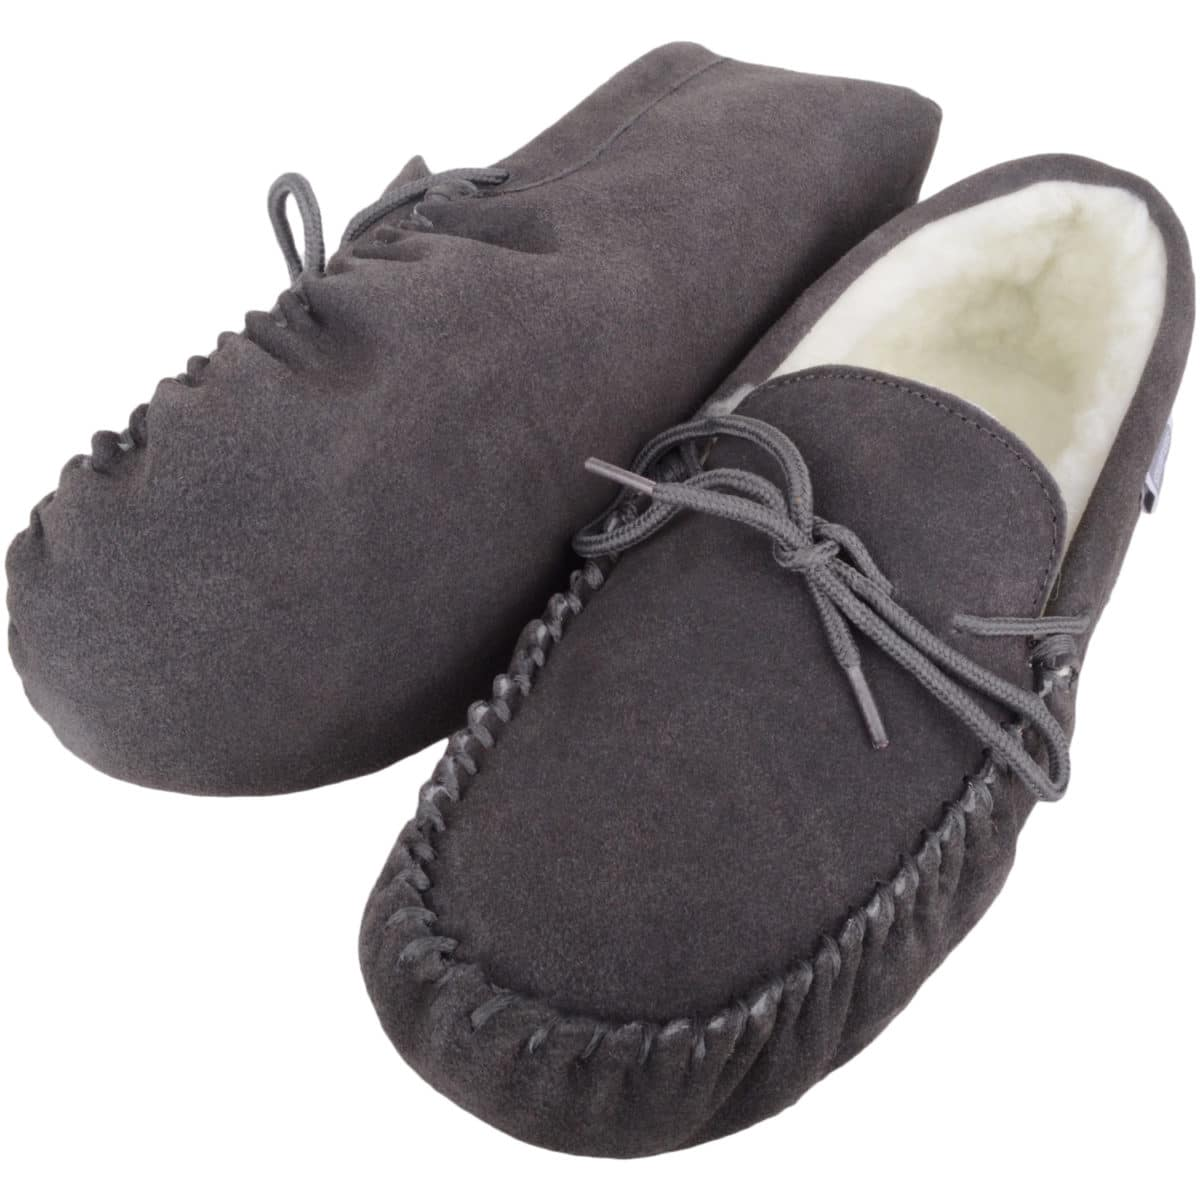 Snugrugs - Wool Lined Suede Moccasins Suede Sole - Grey